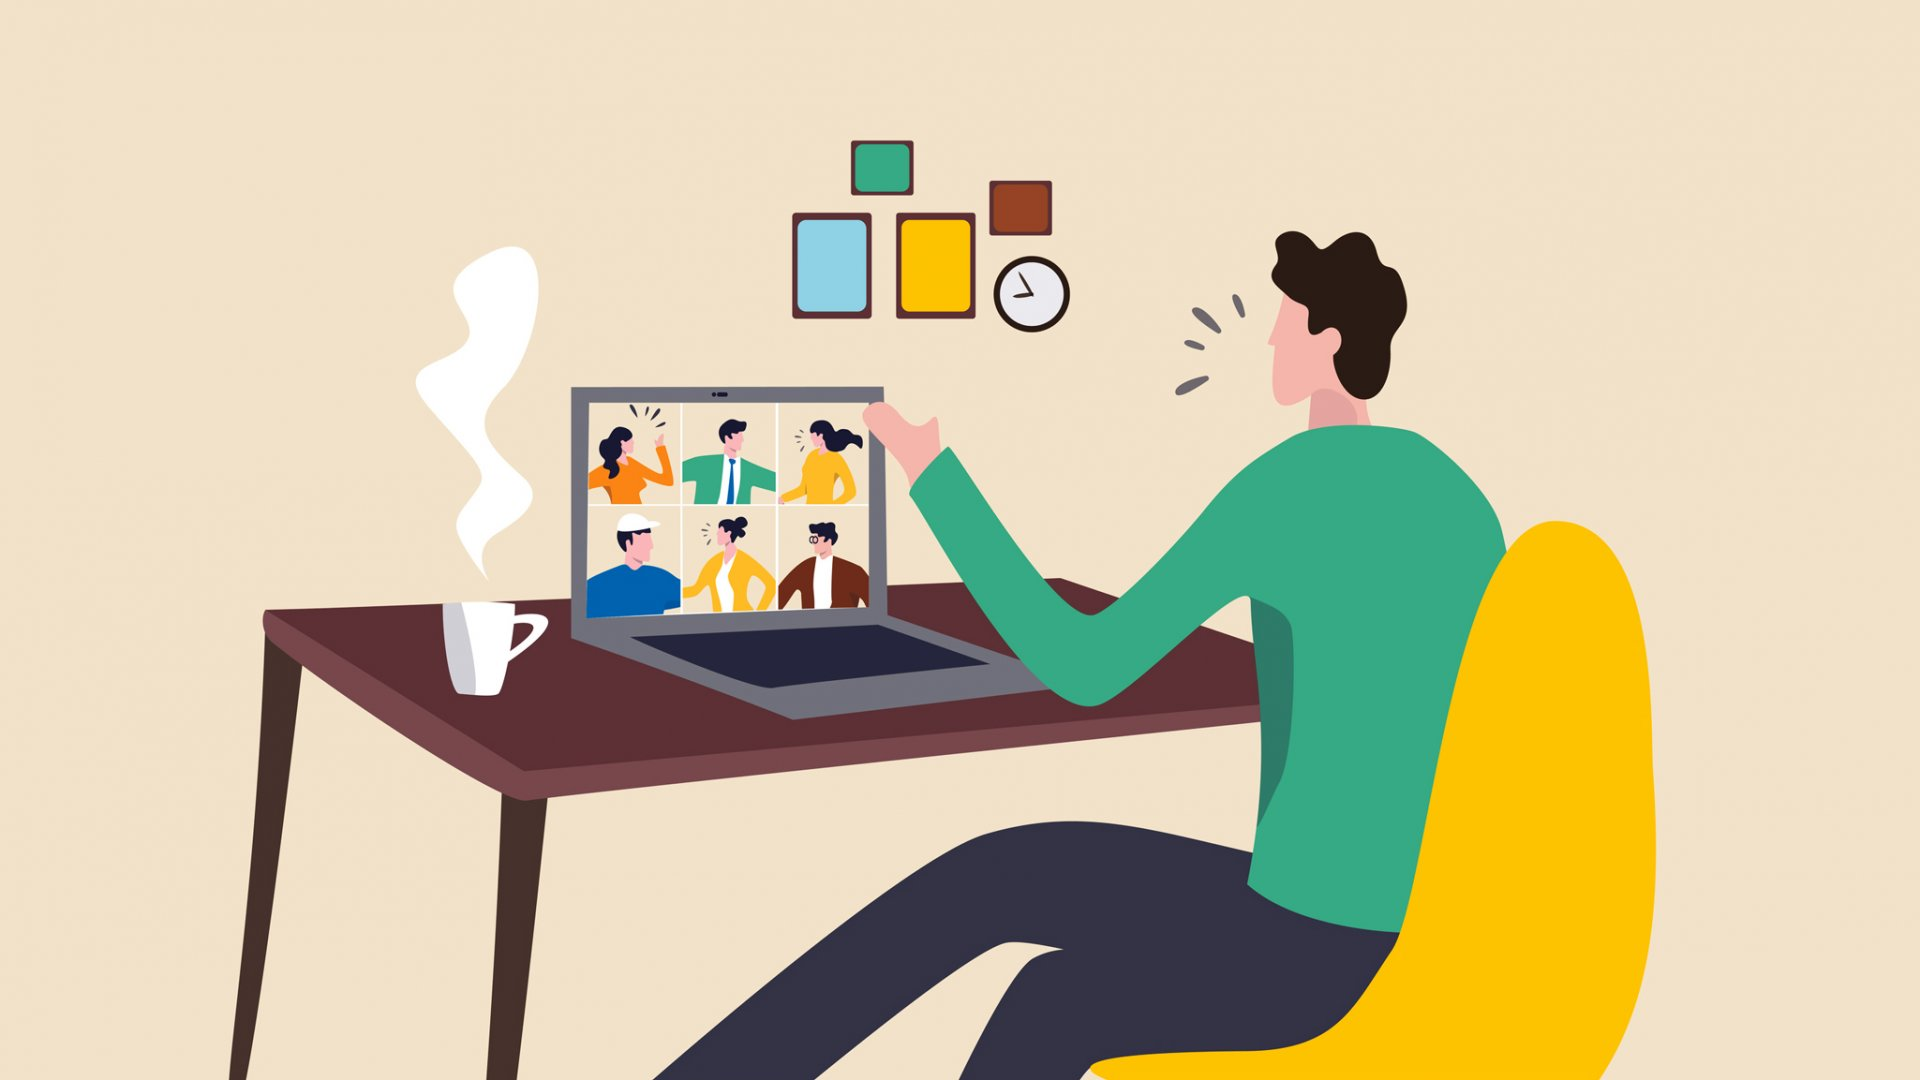 I've Run a Remote Company for 9 Years. Here's How to Have Productive Virtual Meetings